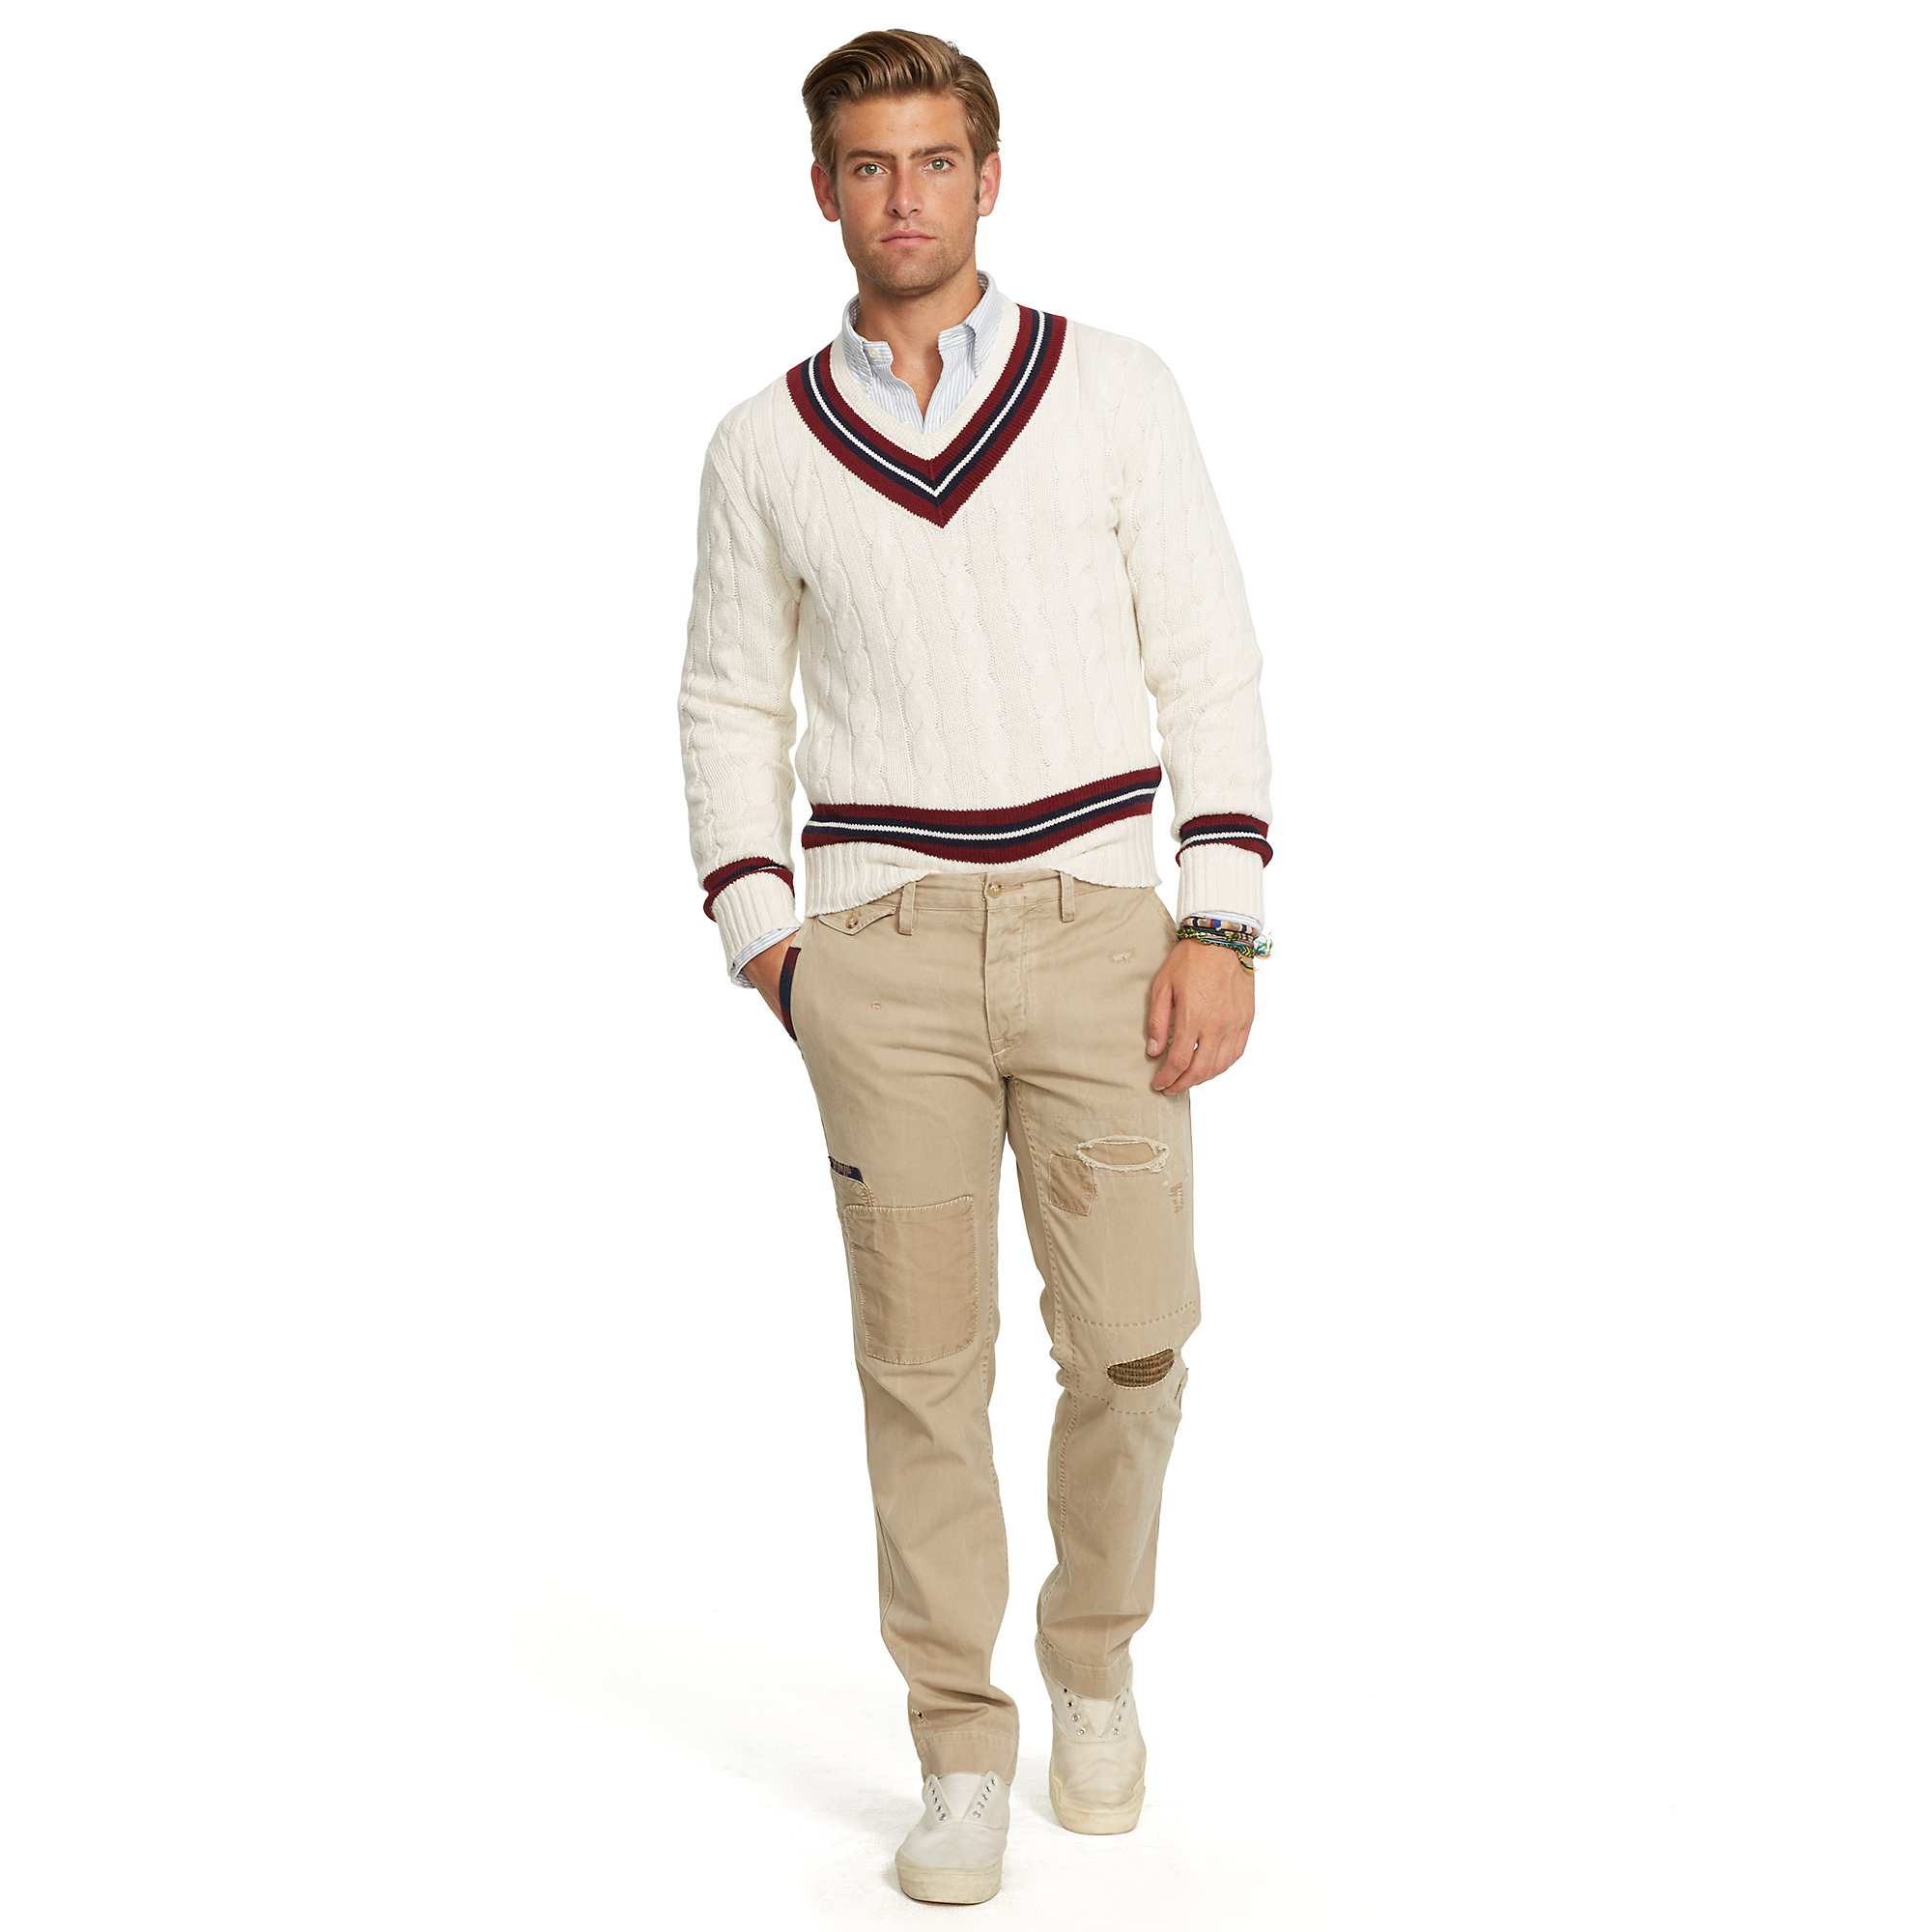 e266010650f ... discount code for lyst polo ralph lauren cotton blend cricket sweater  in white for men 60321